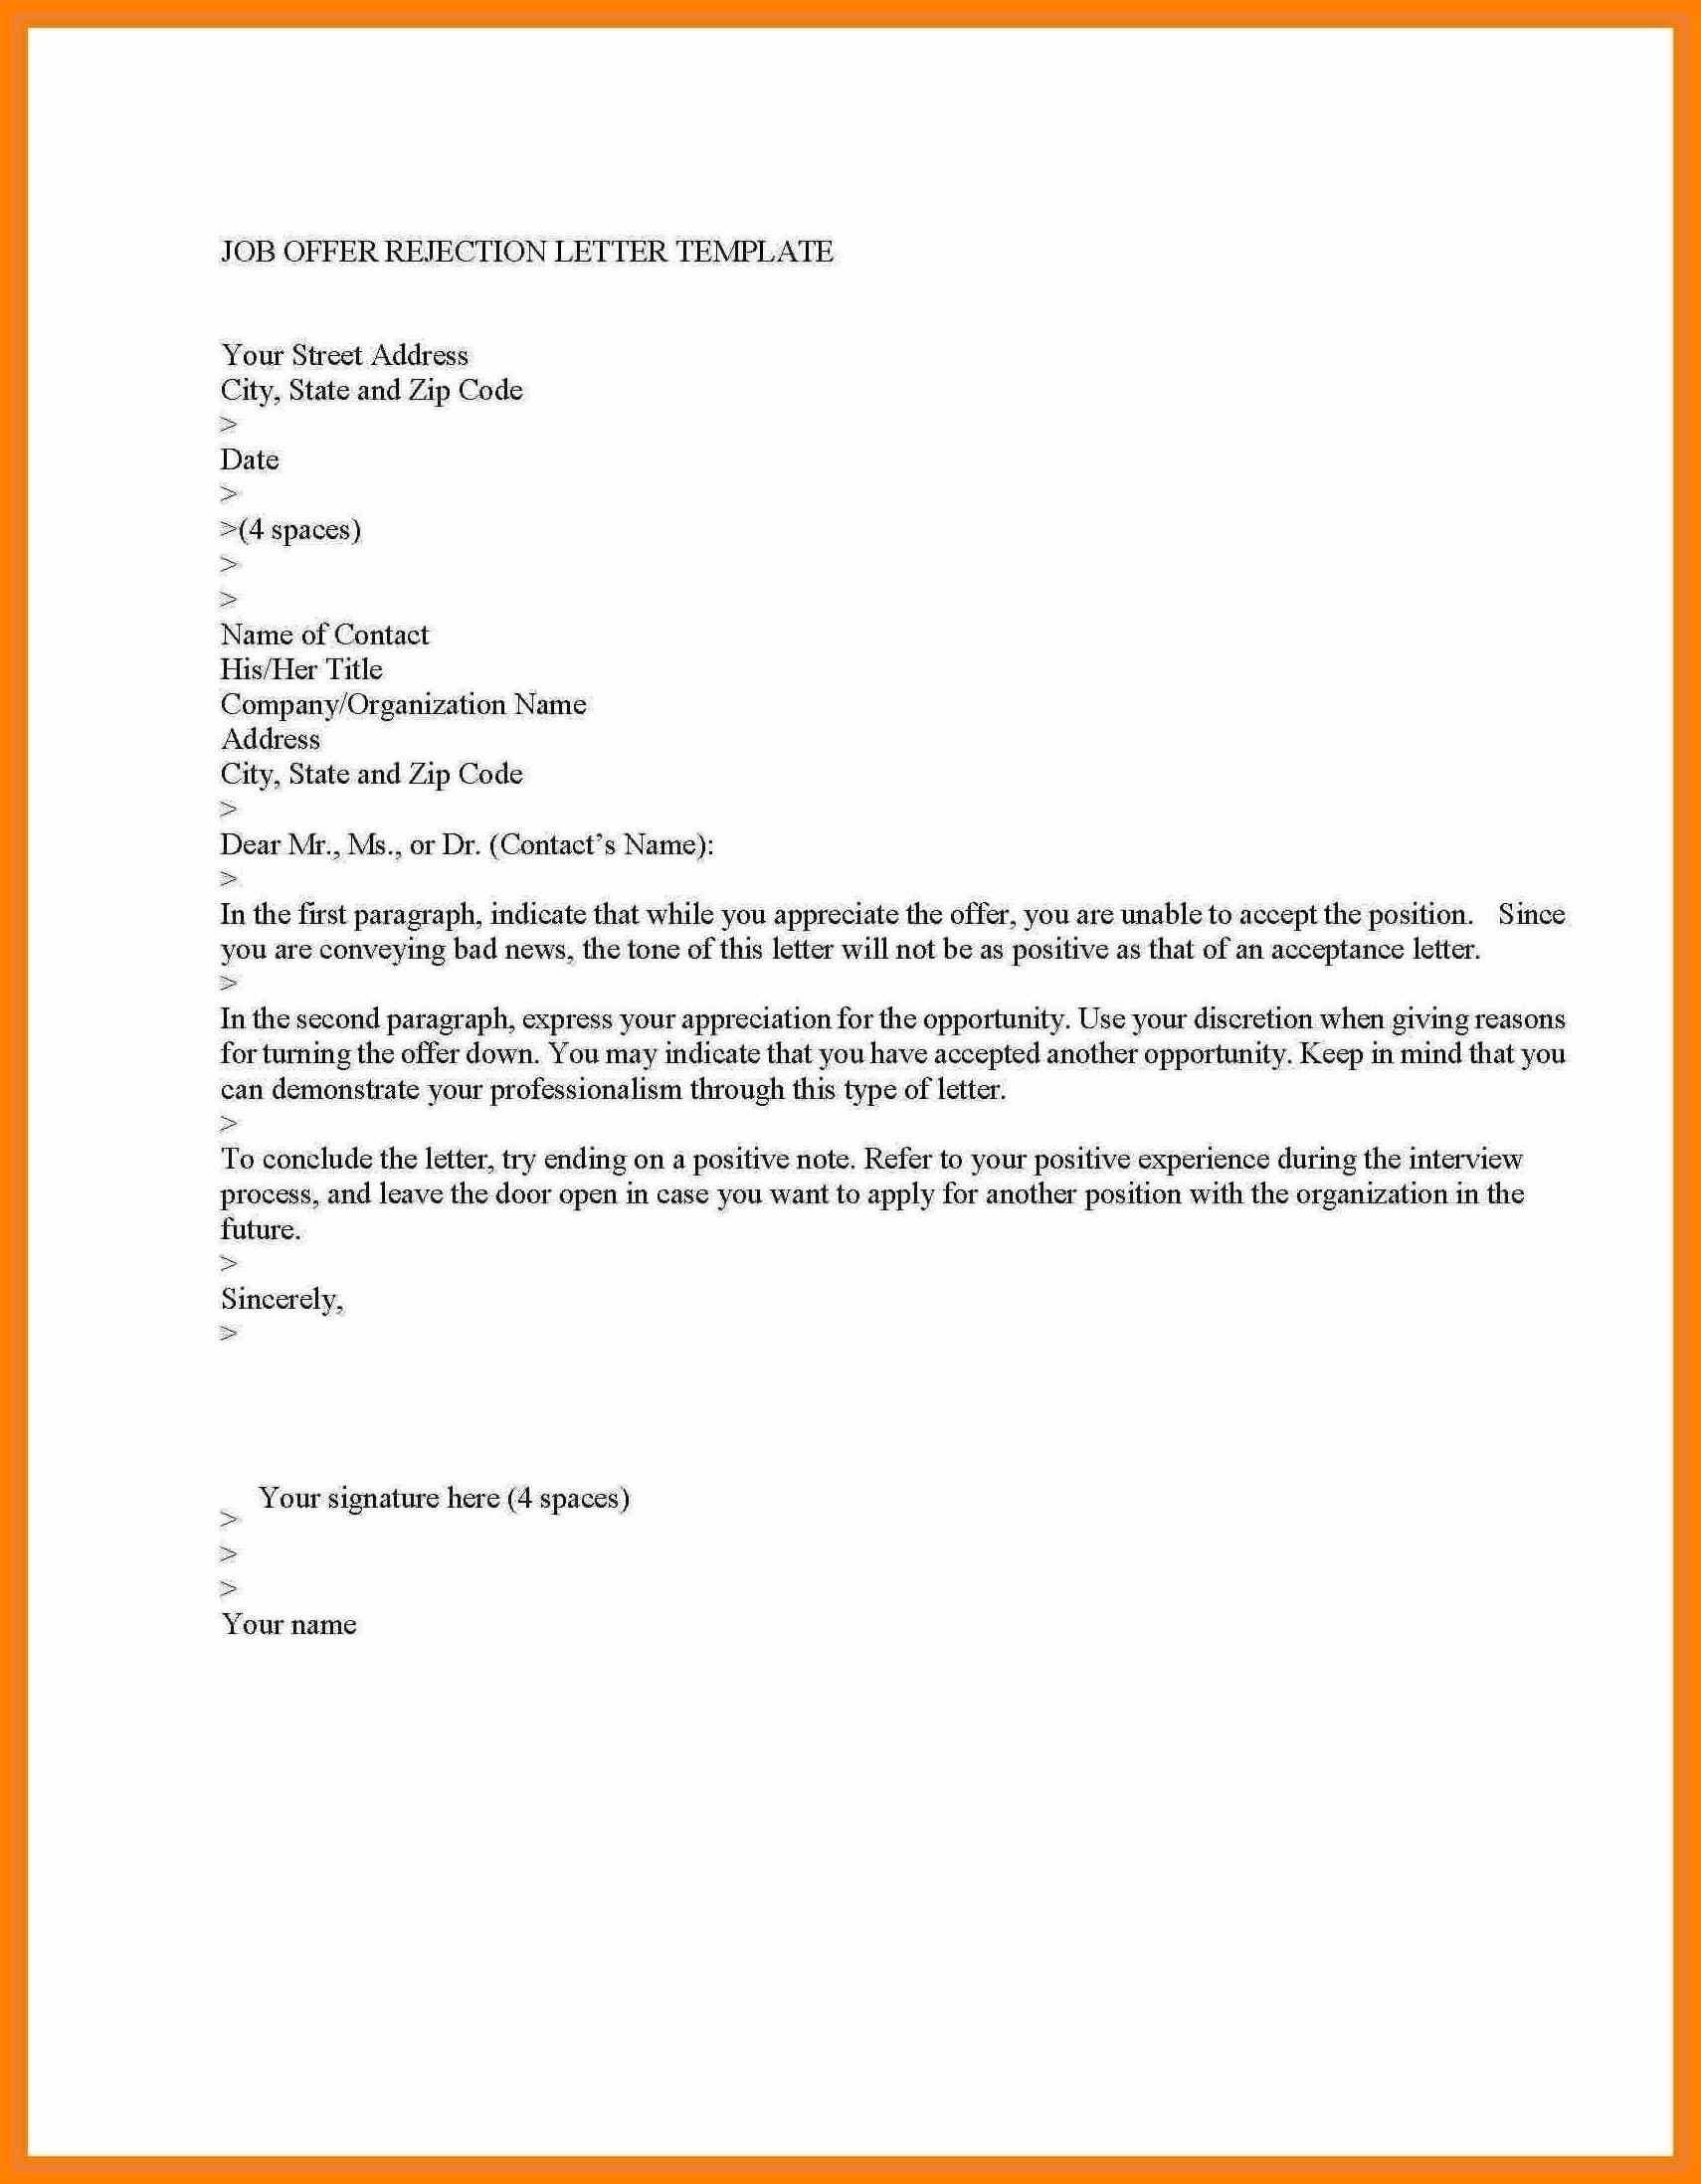 Rejection Letter Template after Interview - Declining A Job Fer Letter Refrence Letter Rejection Job Fer Save